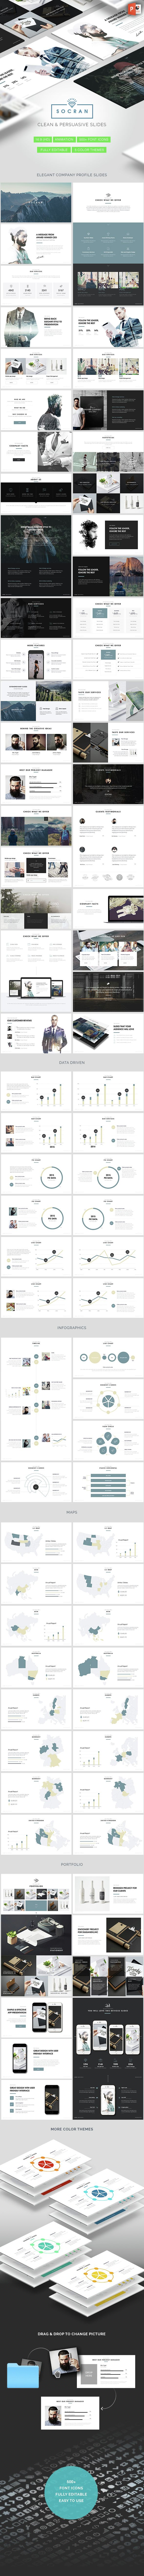 SOCRAN - Clean & Modern Powerpoint Template (PowerPoint Templates)